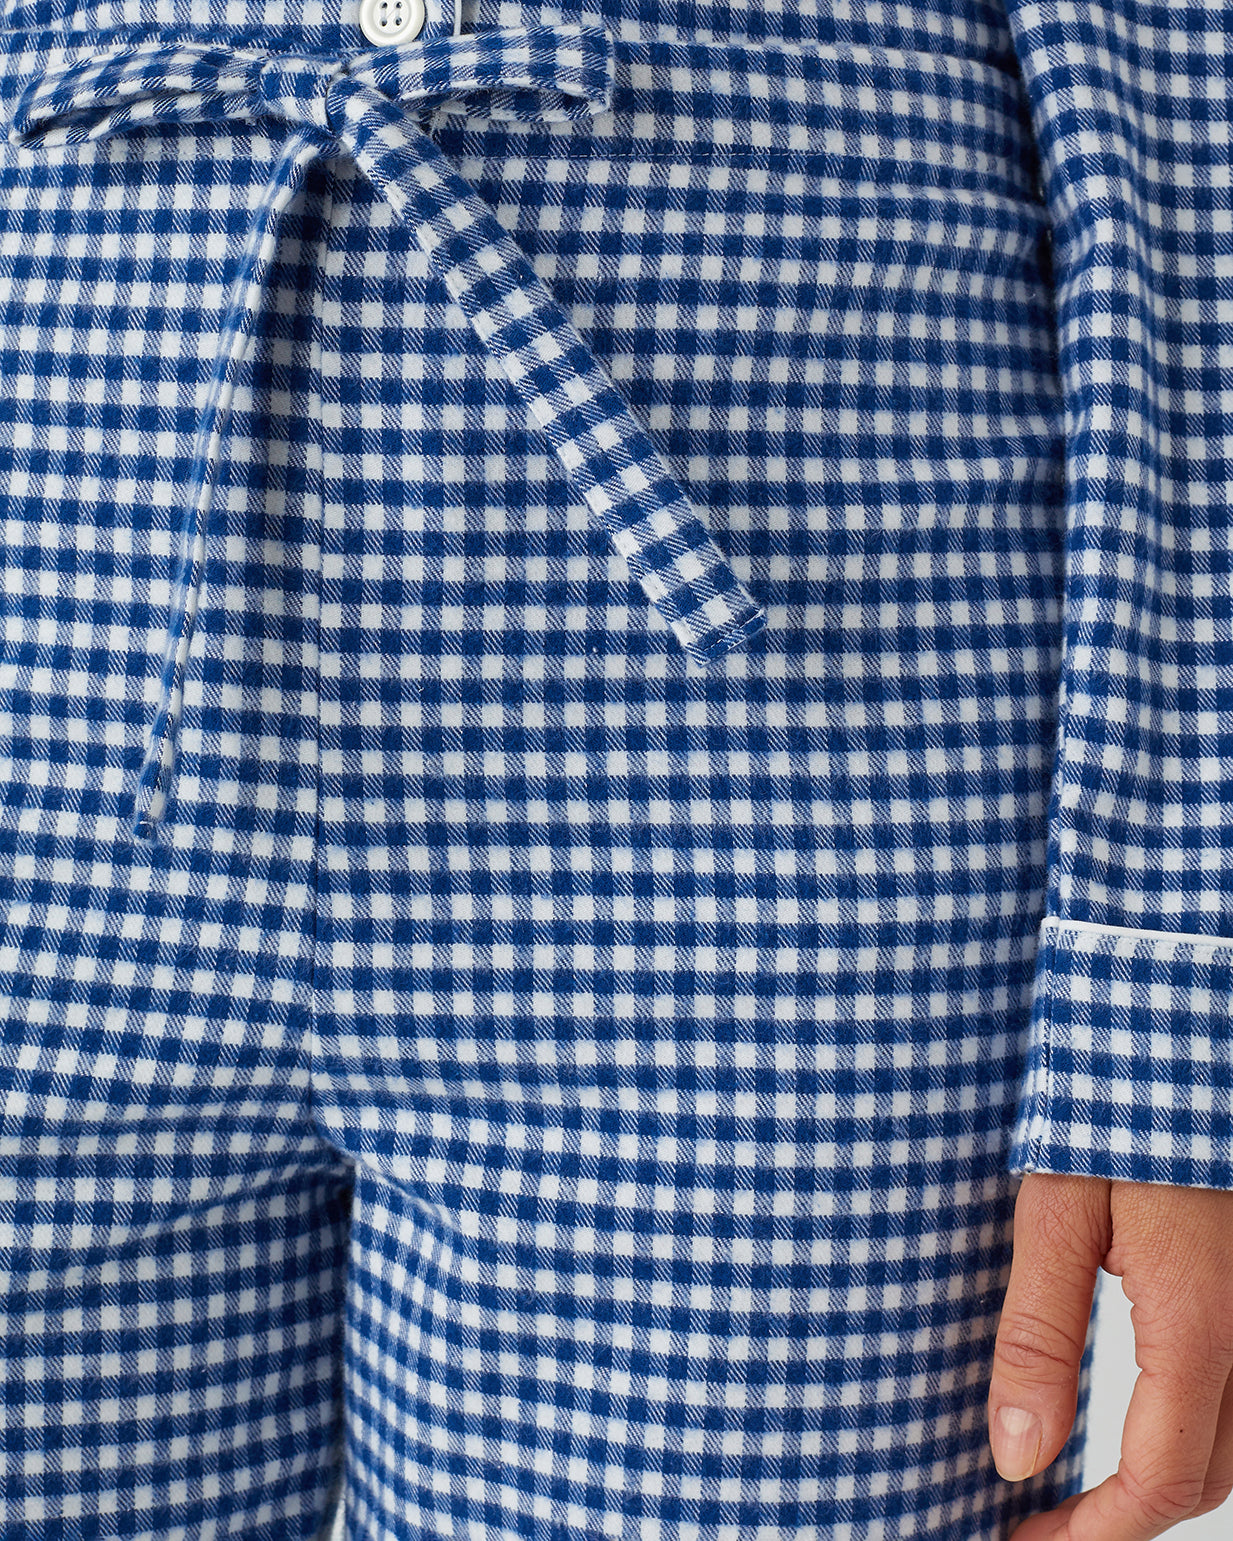 Women's Brushed Cotton Pyjamas (Blps) - Navy Gingham